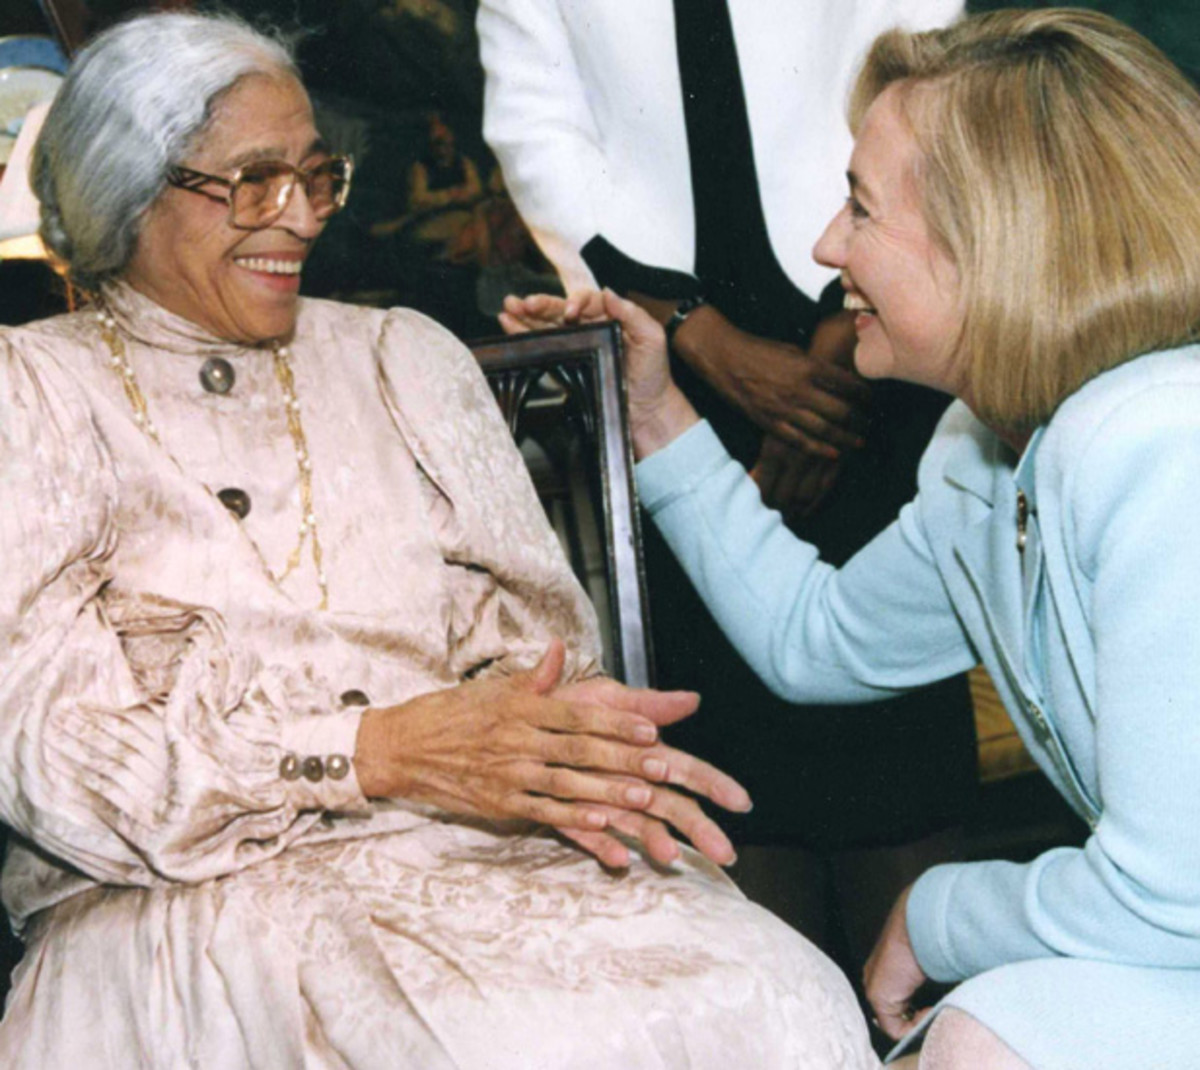 Parks with Hillary Clinton at the White House in 1990. (Photo: Monica Morgan/WireImage/Getty Images)